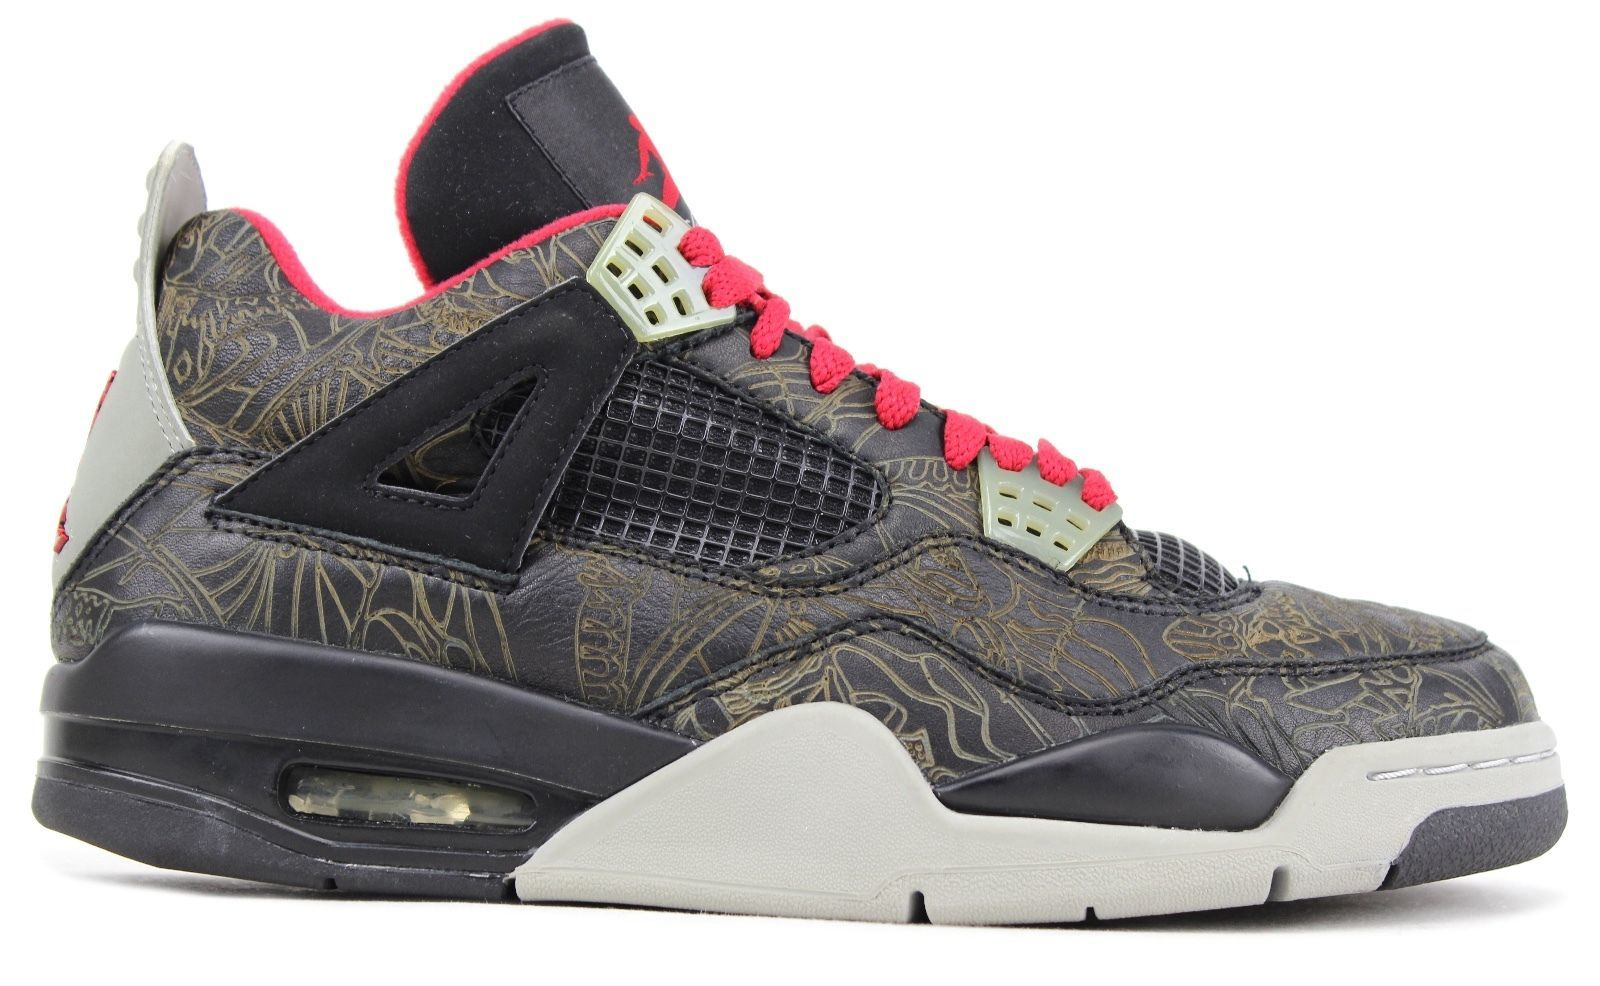 4894233c1cf Air Jordan 4 Retro Laser NRG 'Noble Green/Black/Gym Red' Release Date |  Sole Collector